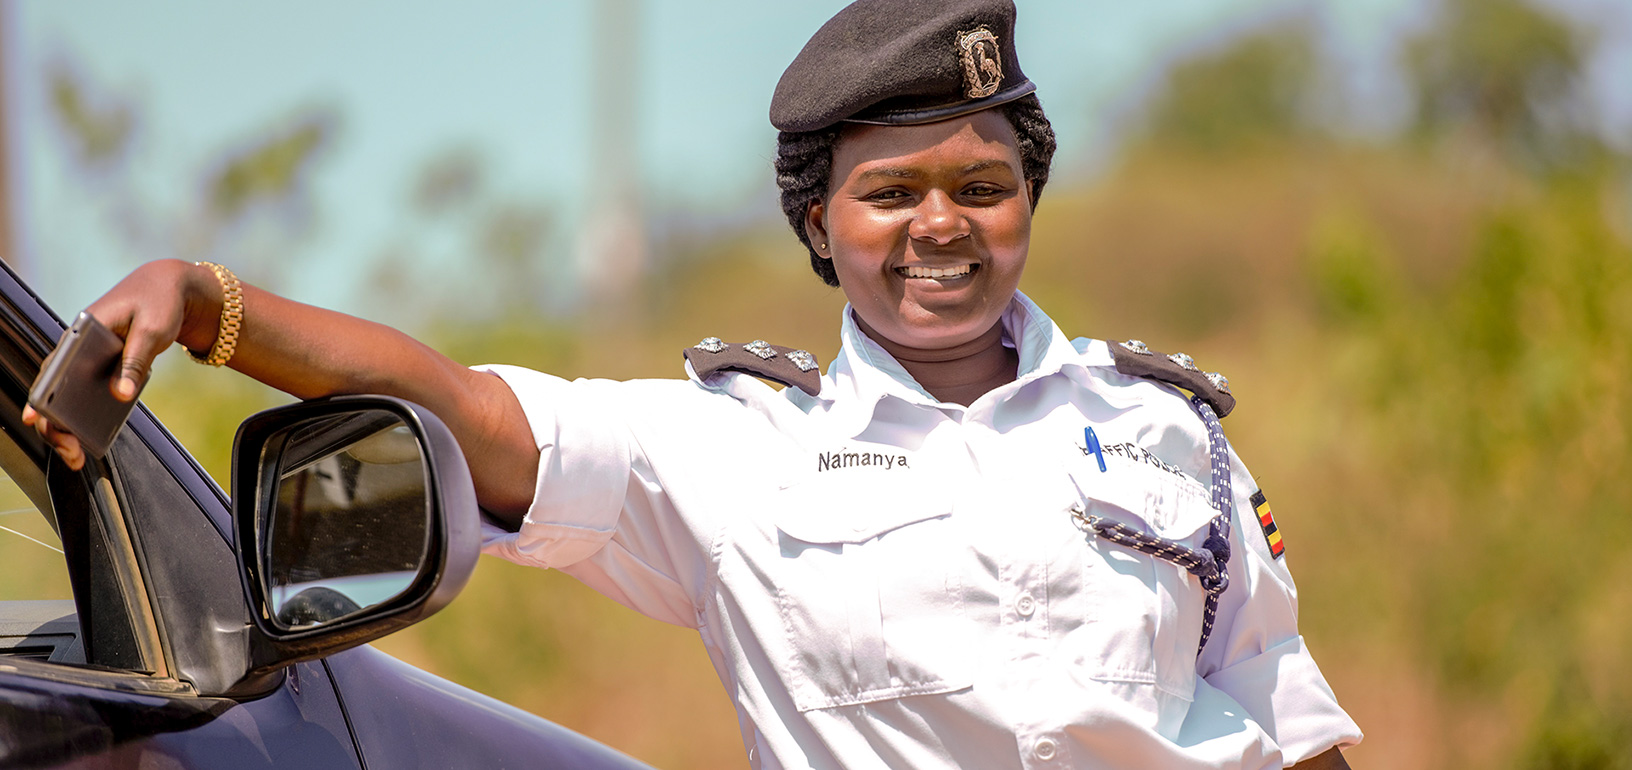 Doreen works as a police officer